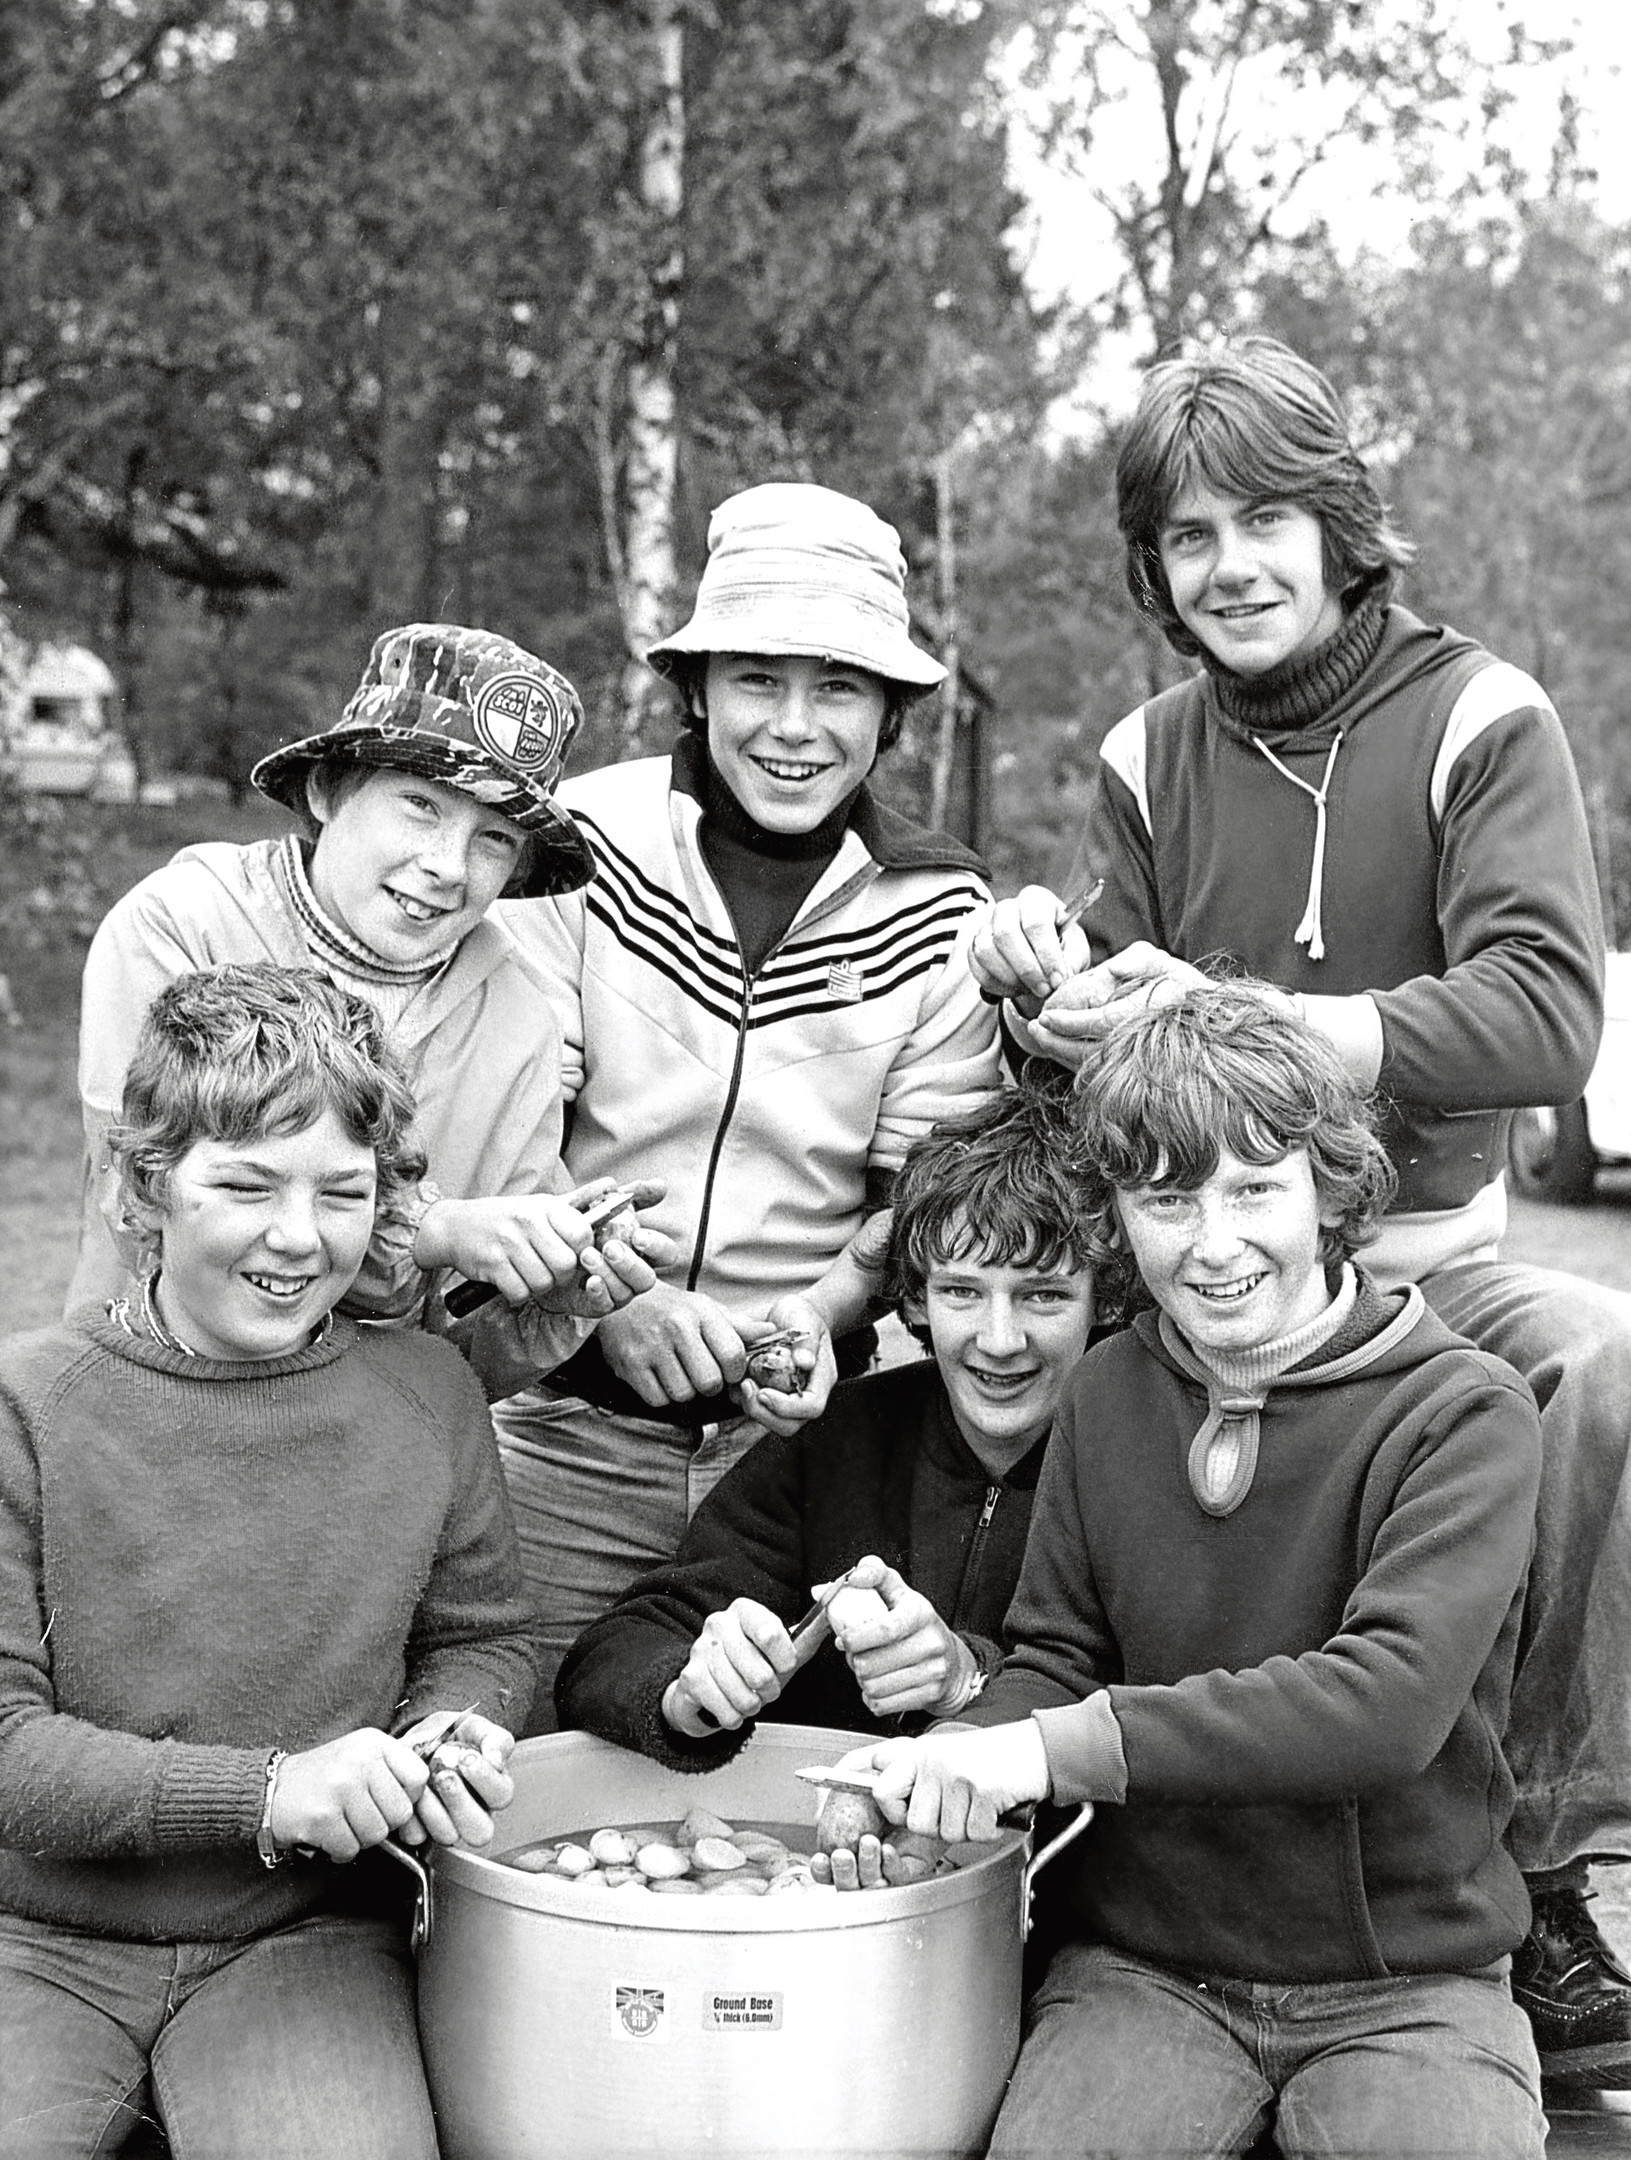 47th Aberdeen members peel some potatoes during the Culter Boys' Brigade camp.